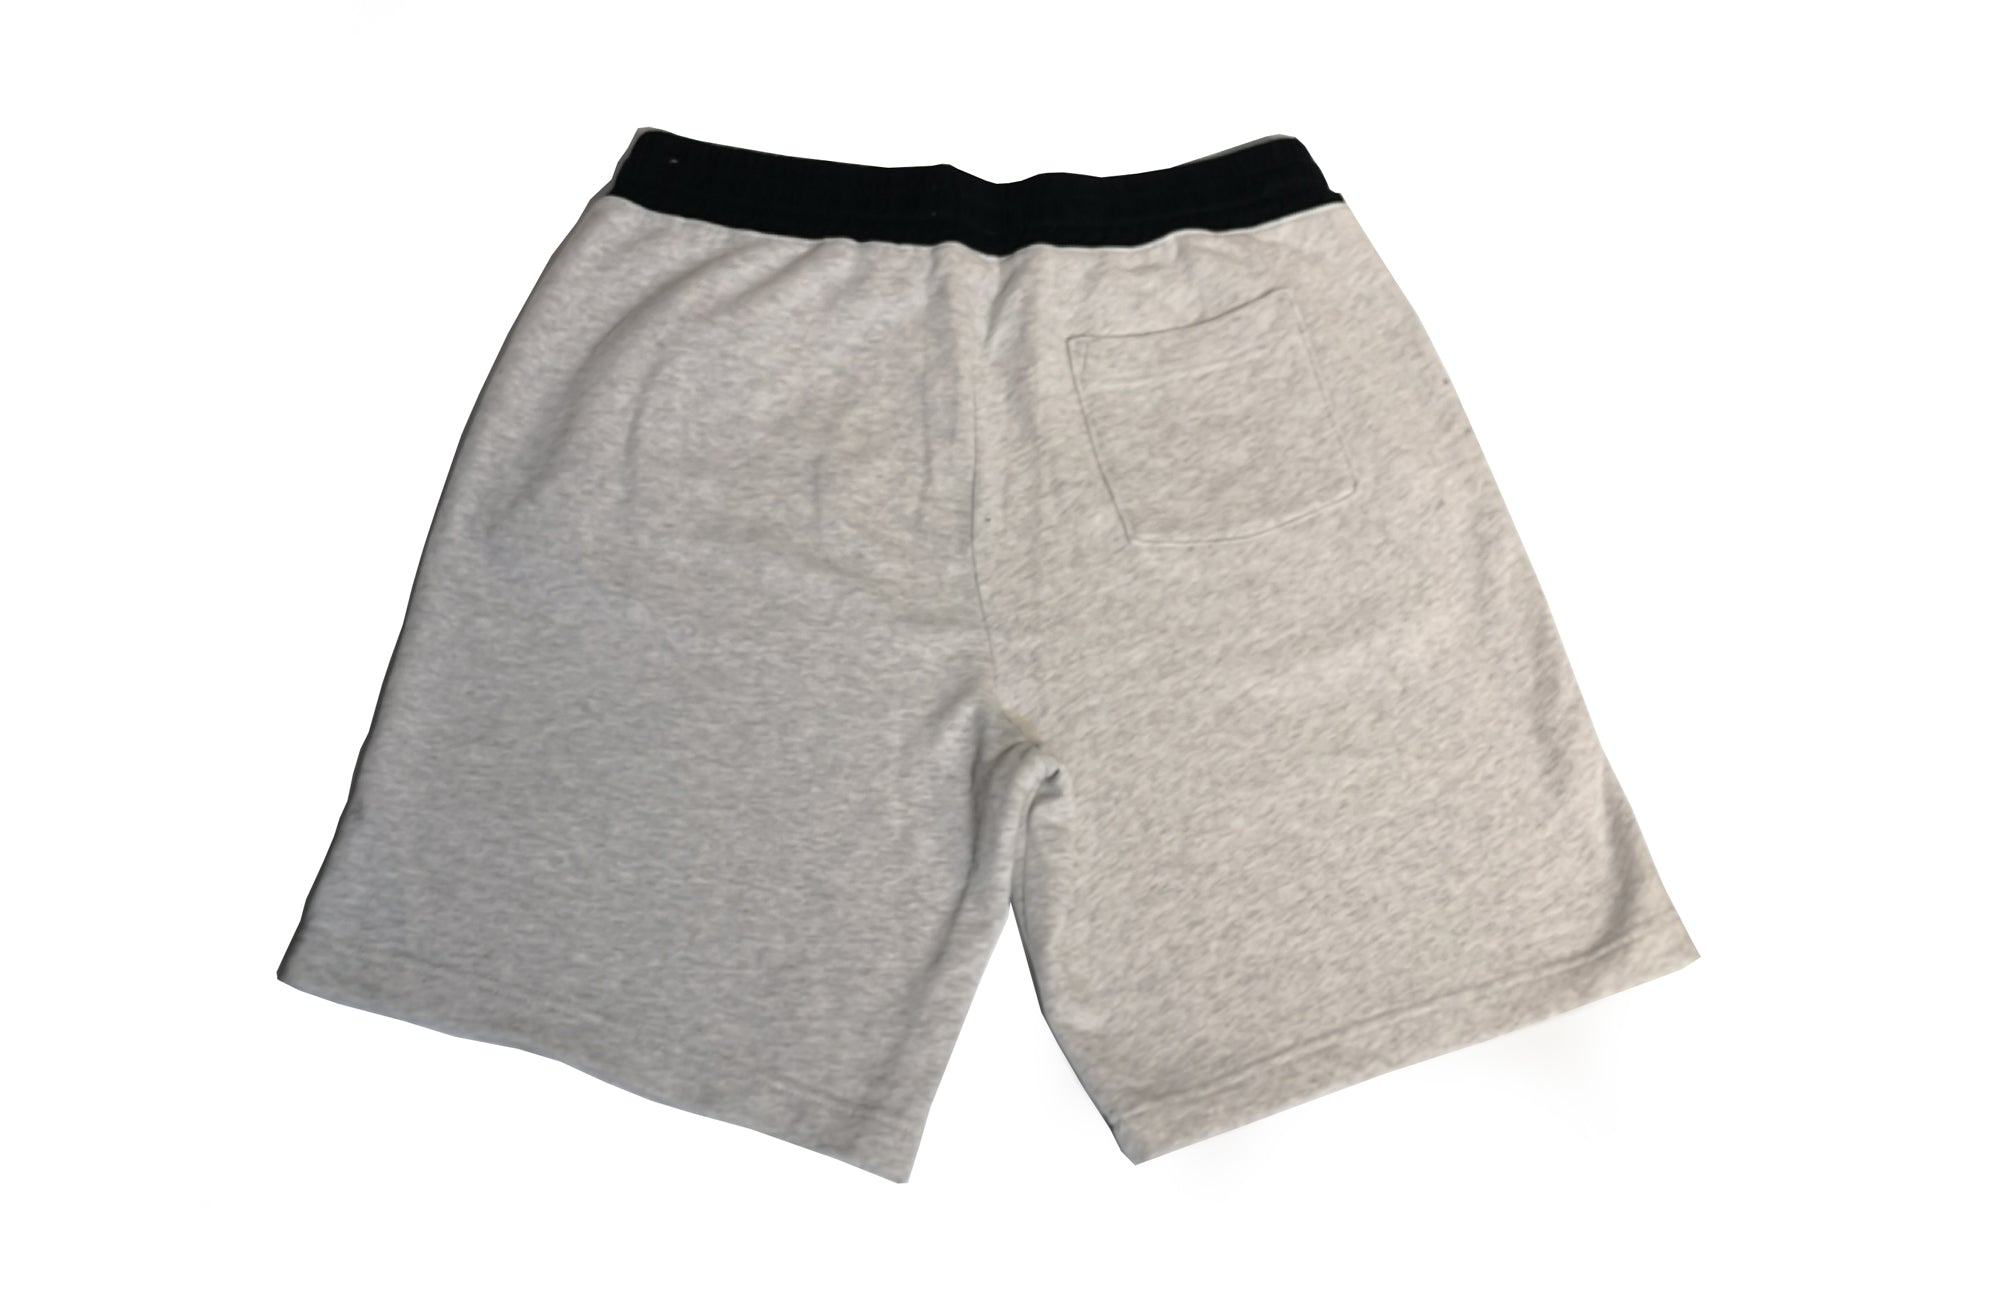 Hollister Grey Shorts (M)